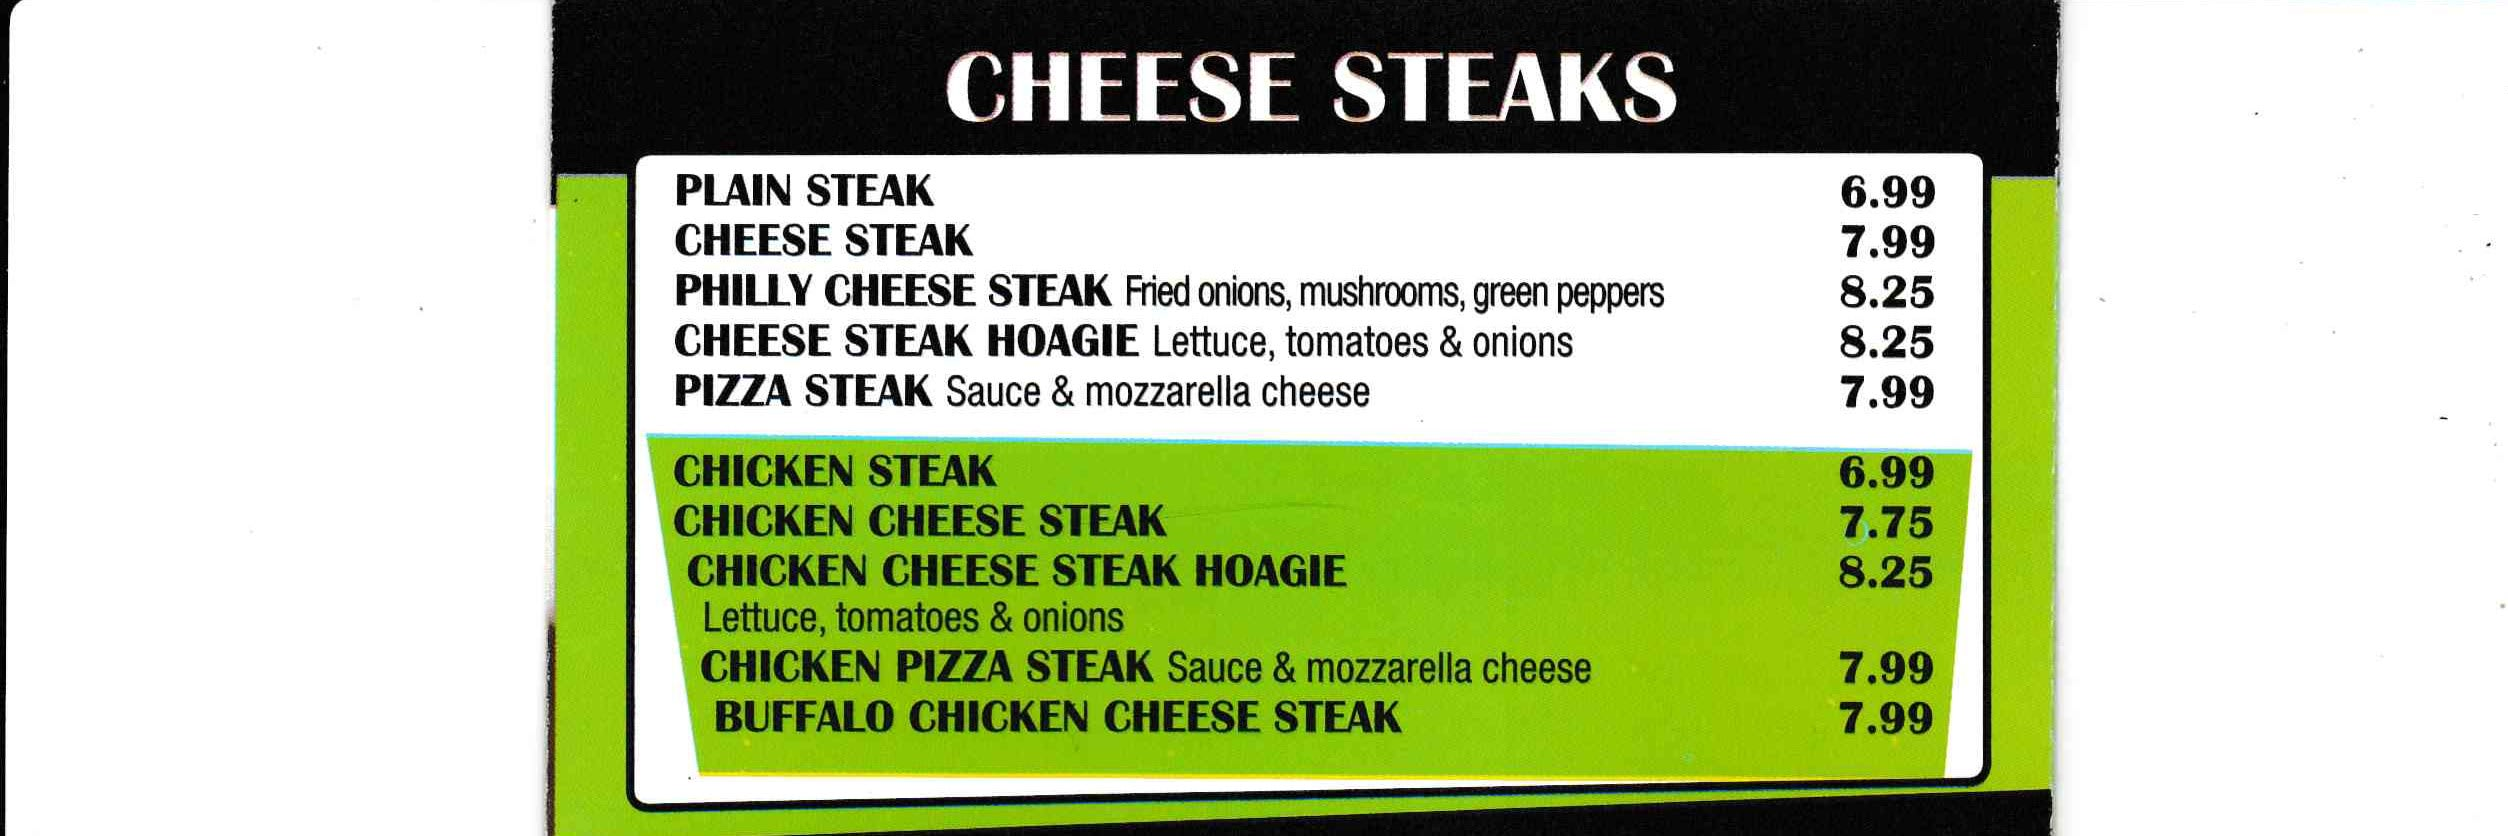 Cheese Steak ~